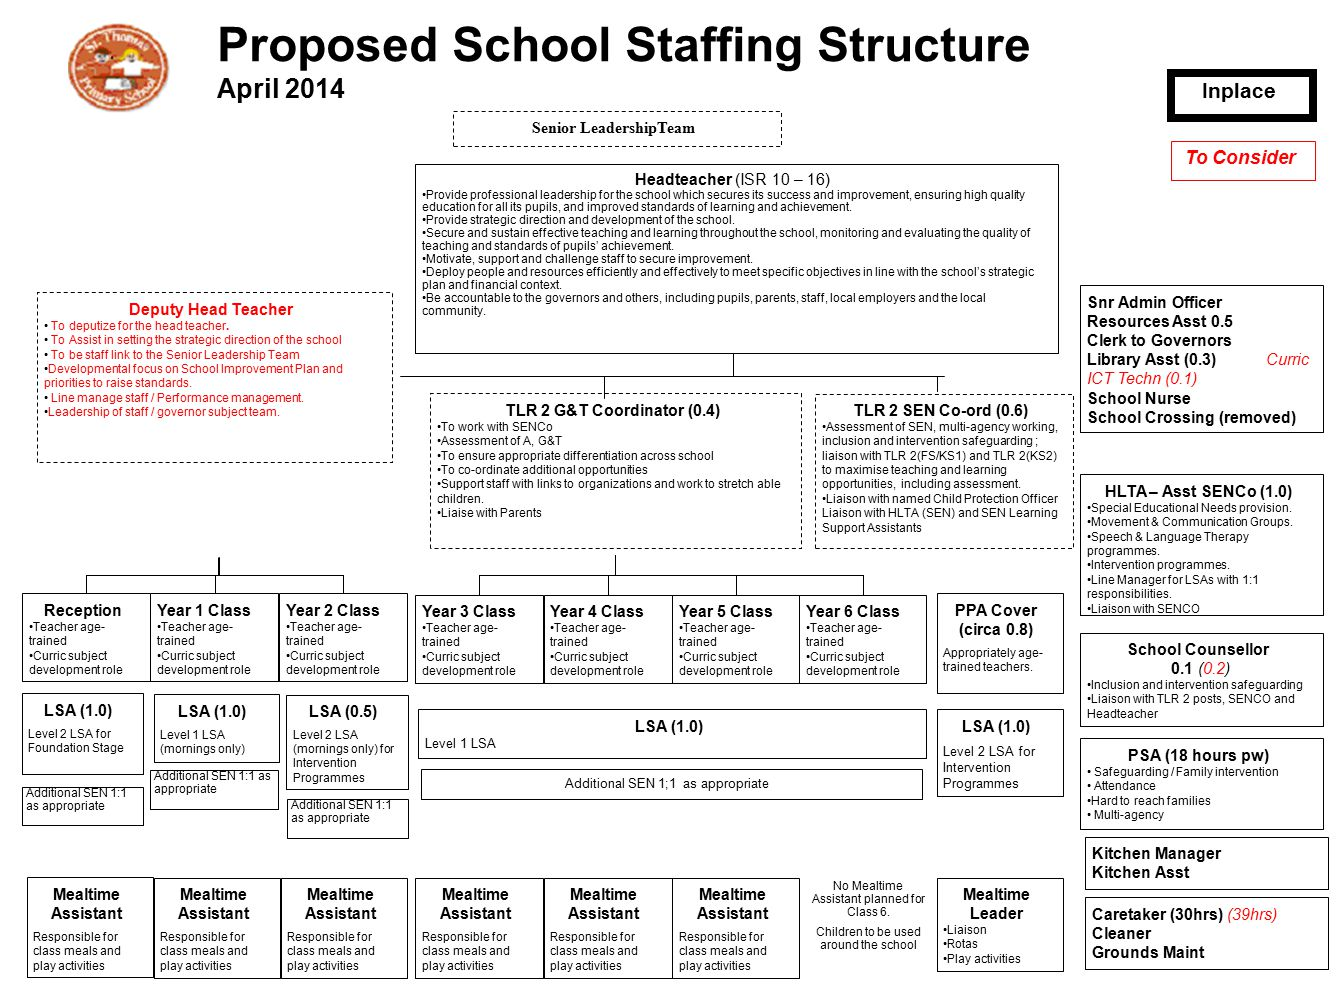 Proposed School Staffing Structure April 2014